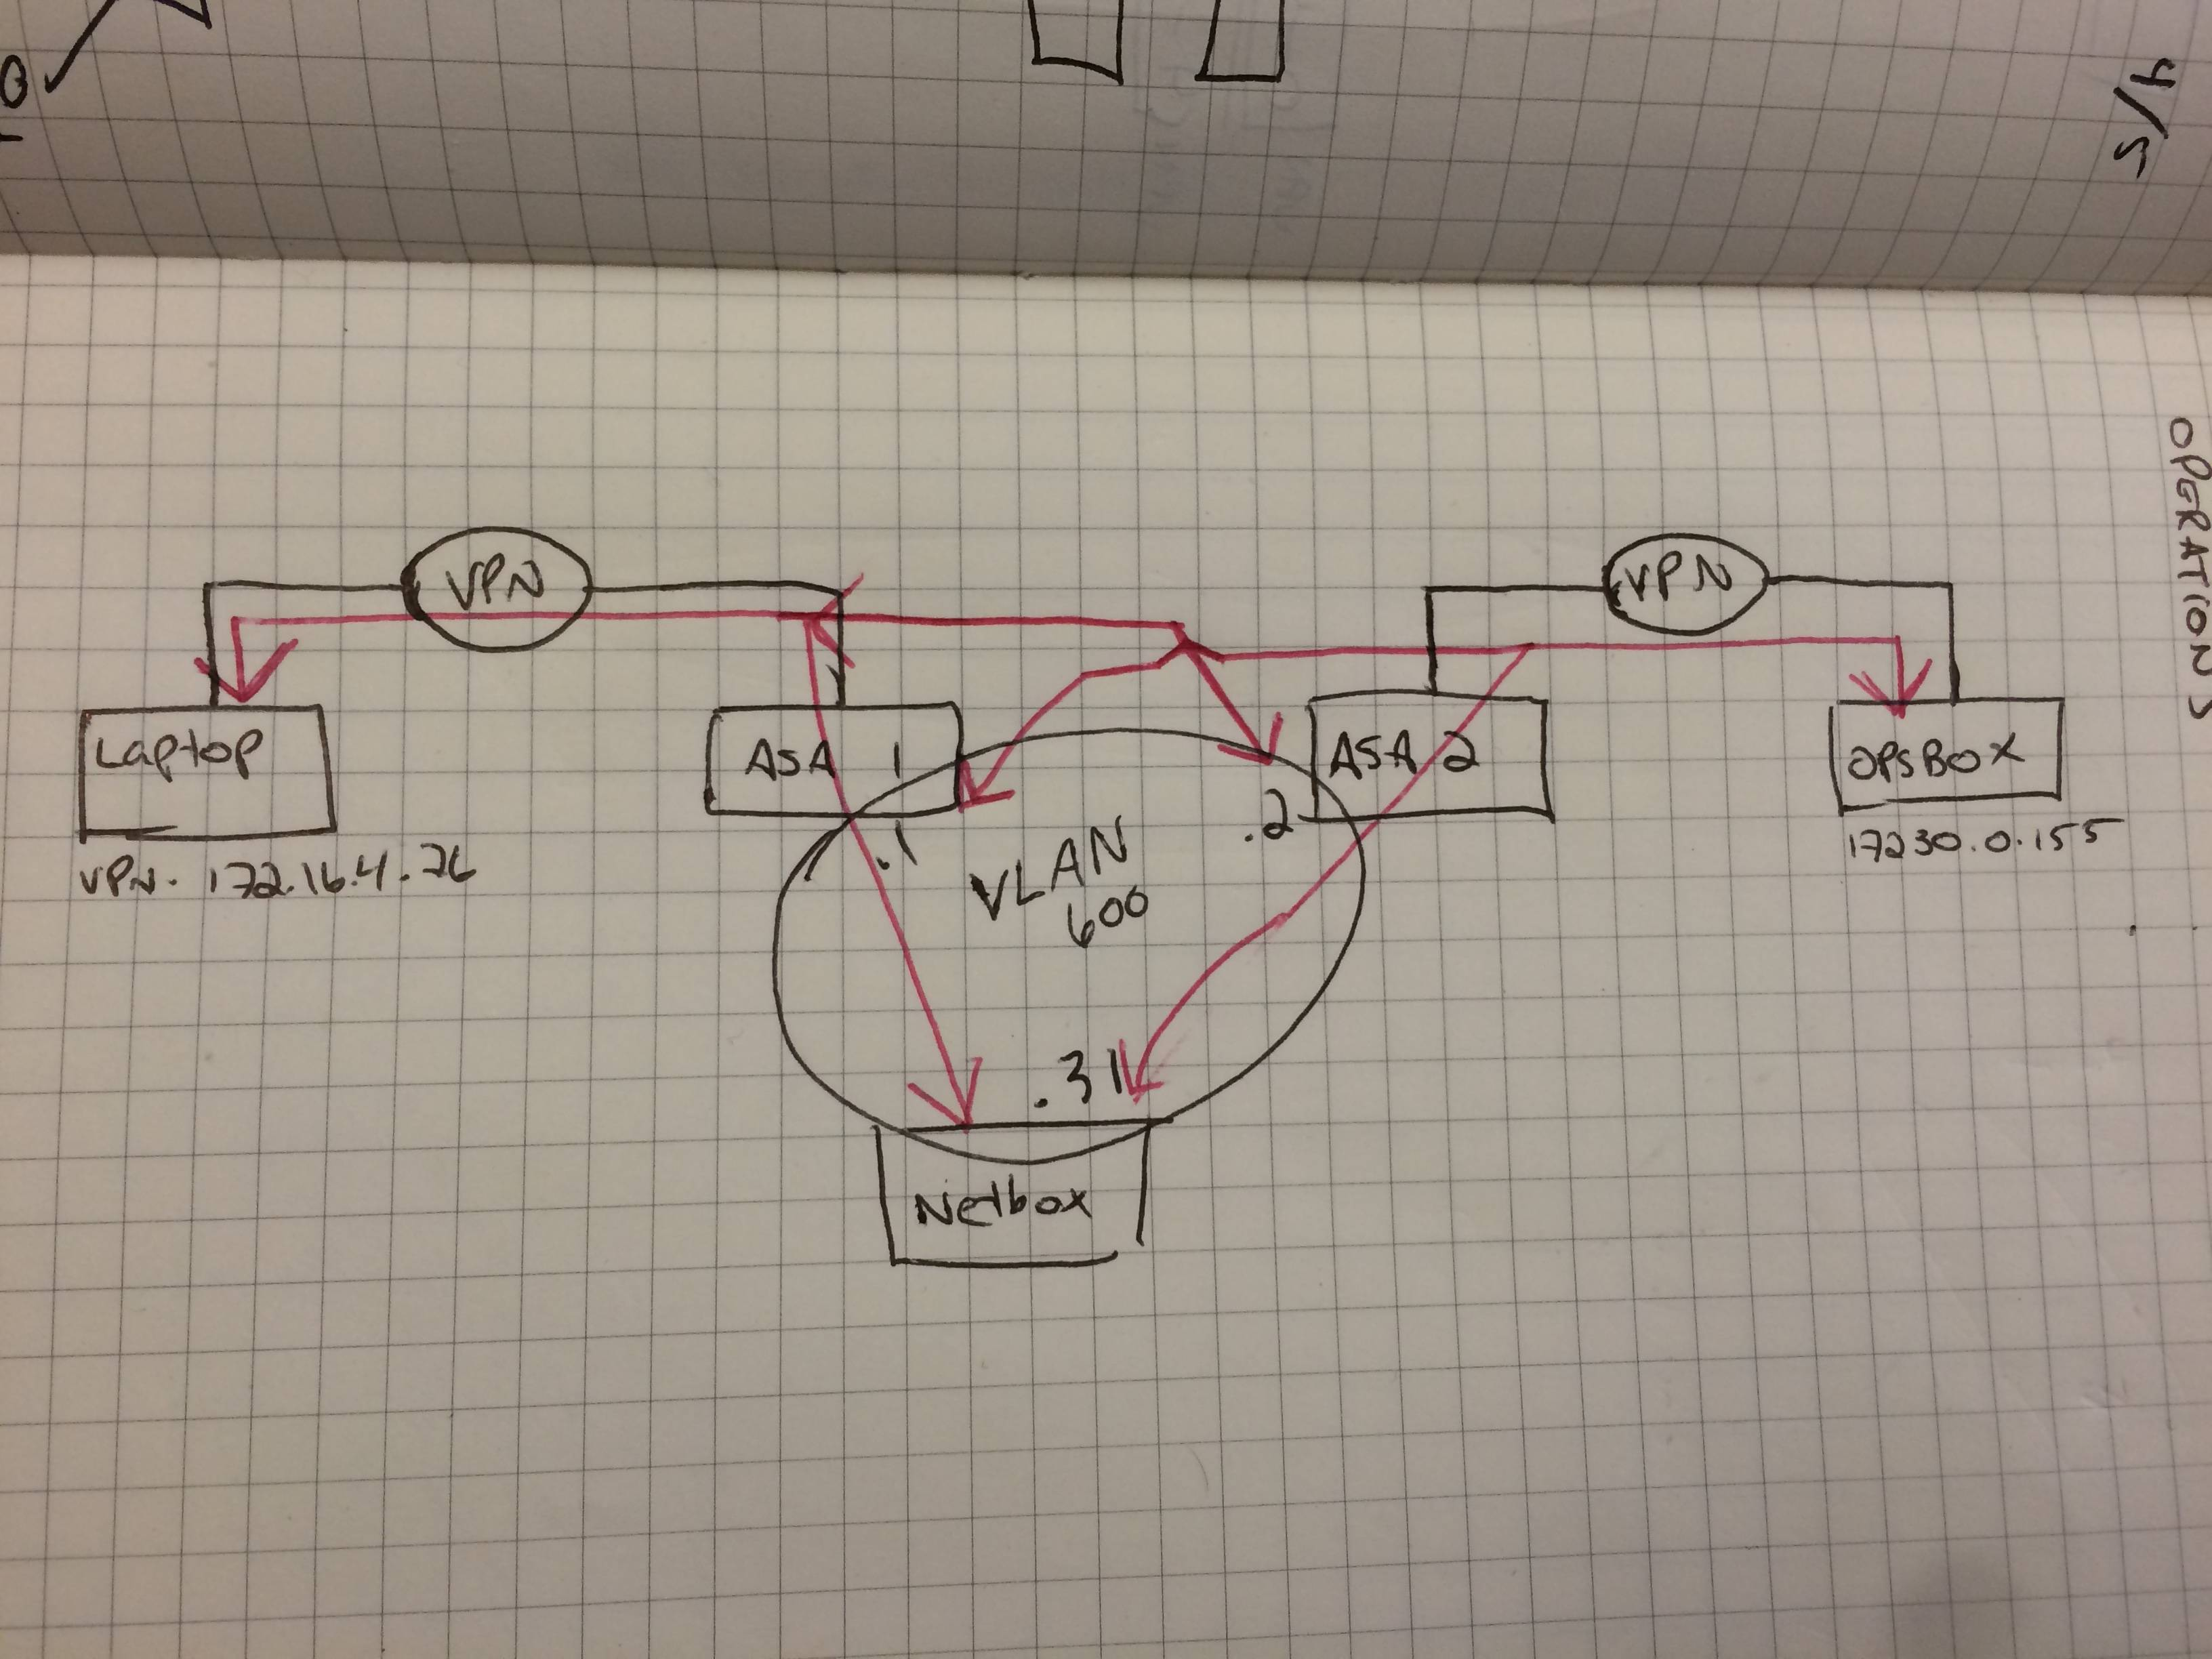 network diagram vpn tunnel 2006 honda vtx 1300 wiring remote access traffic is not properly routing through